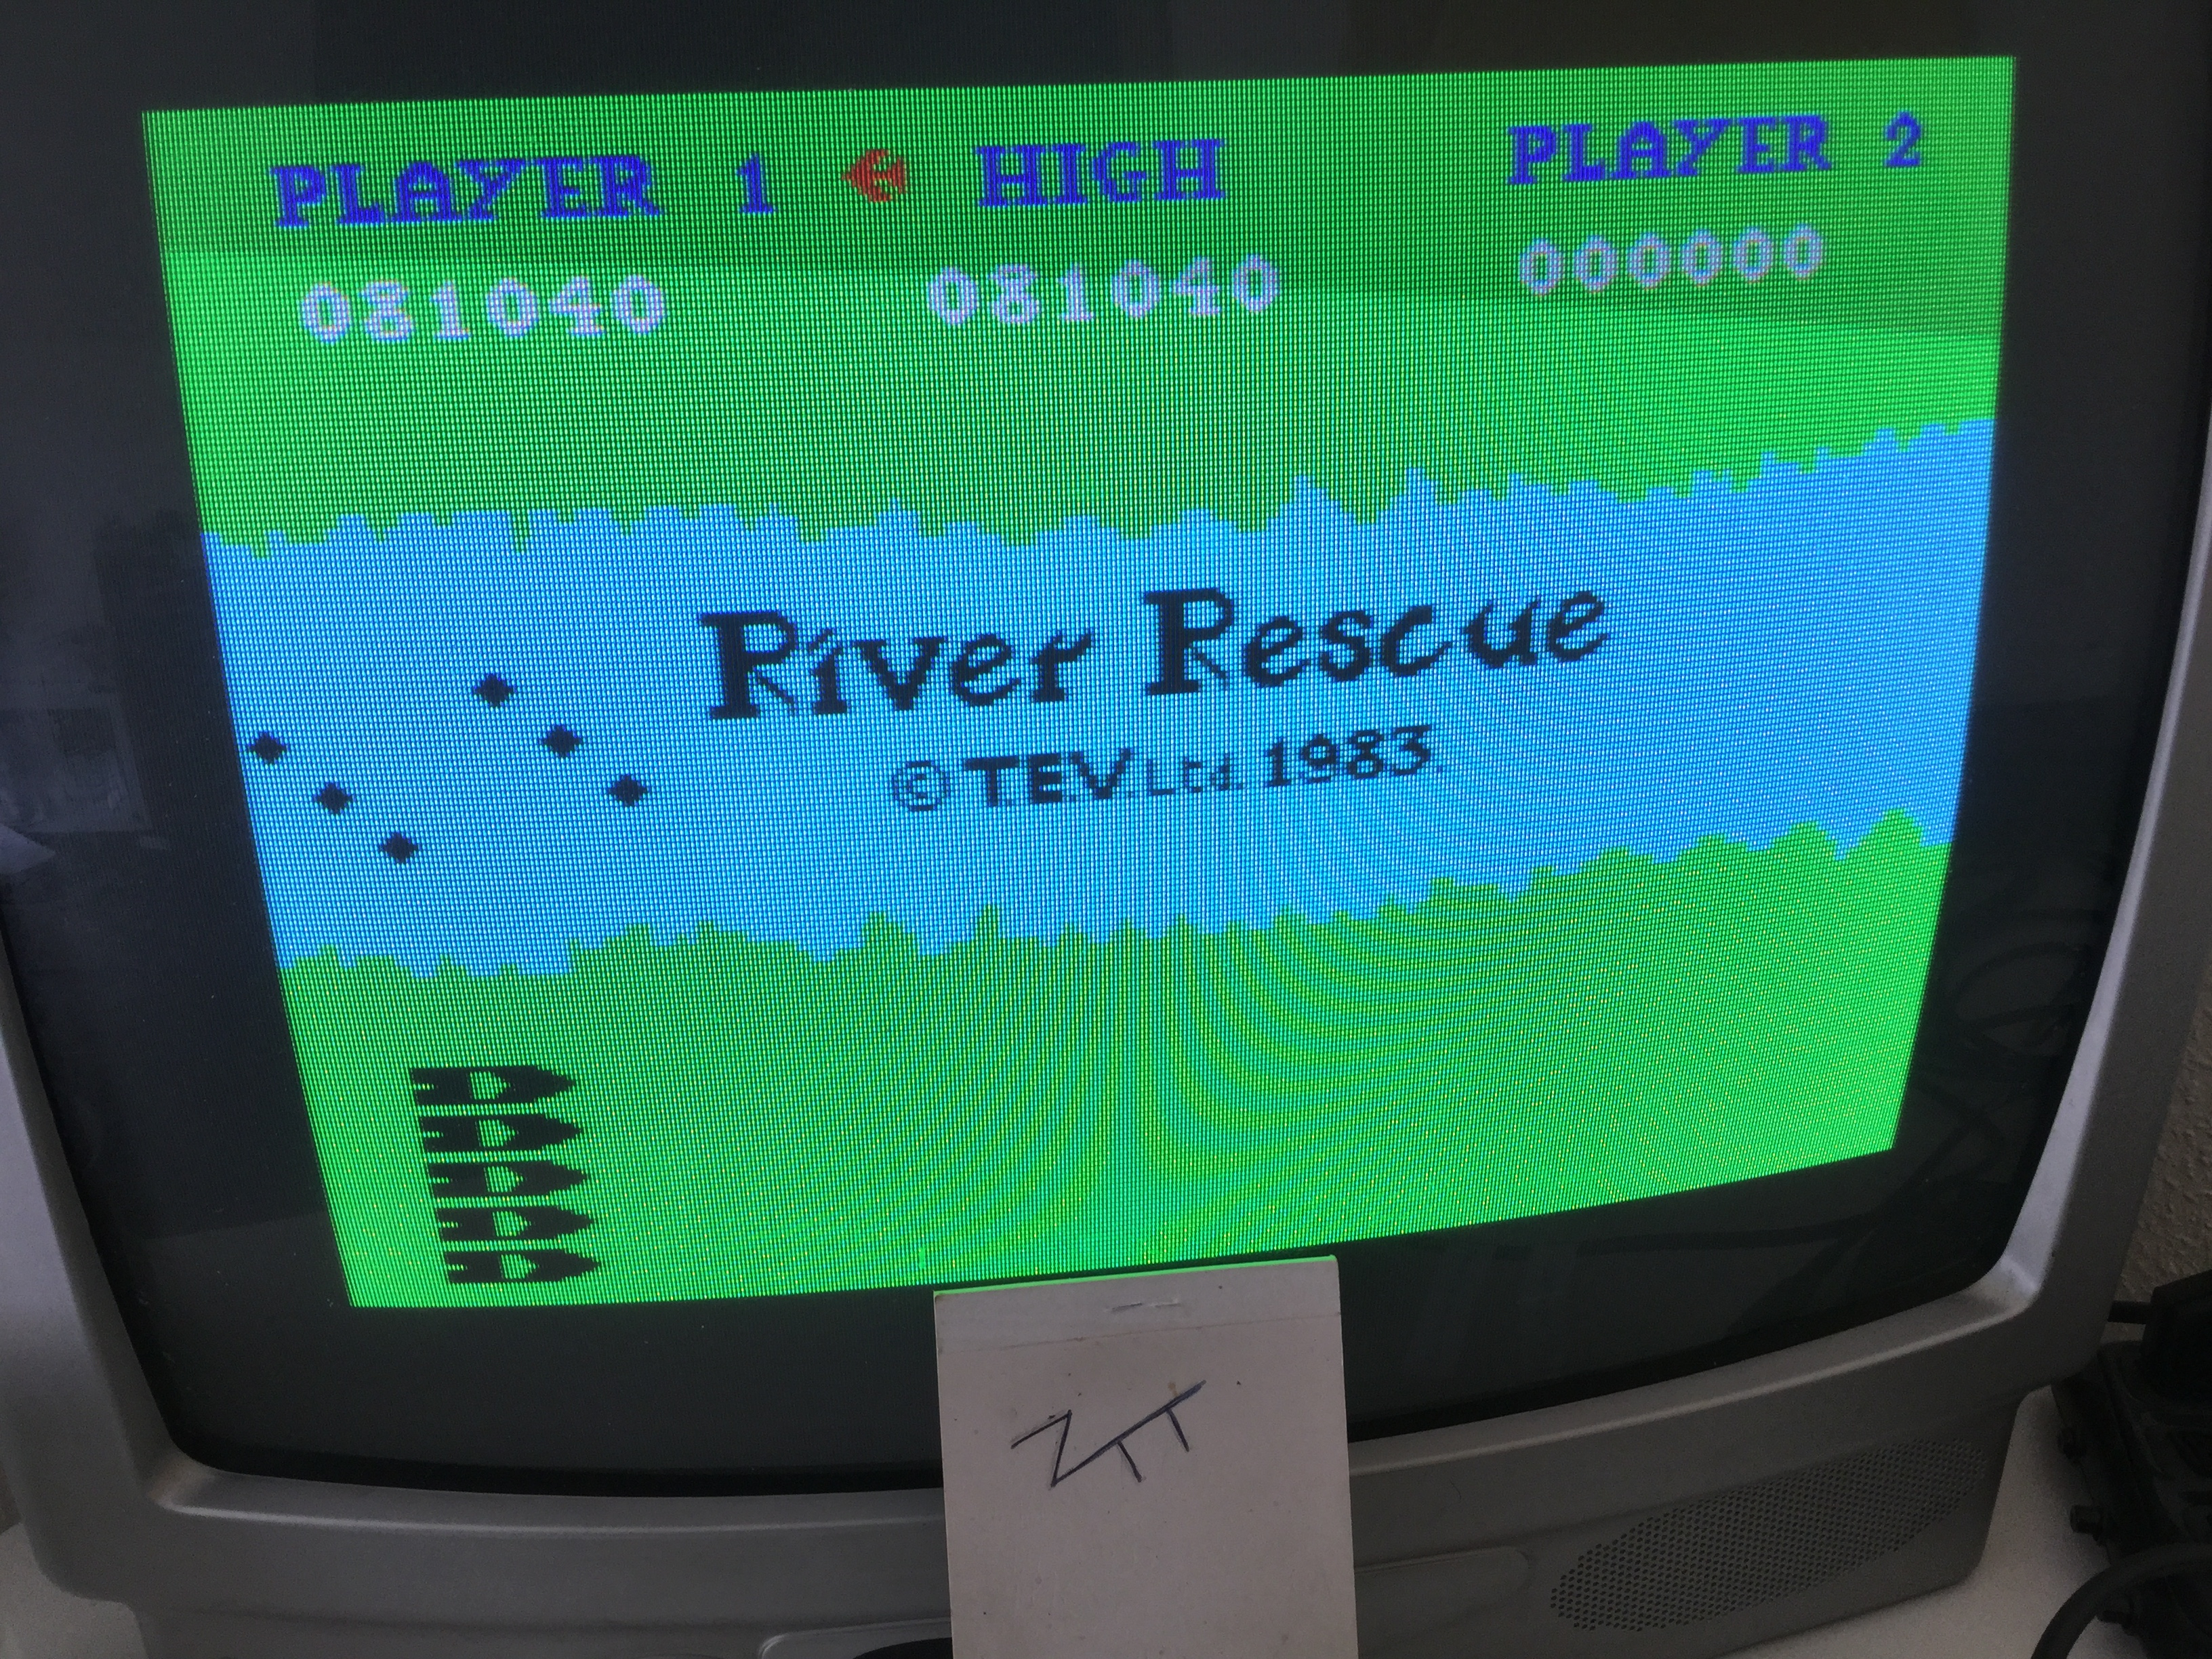 River Rescue 81,040 points